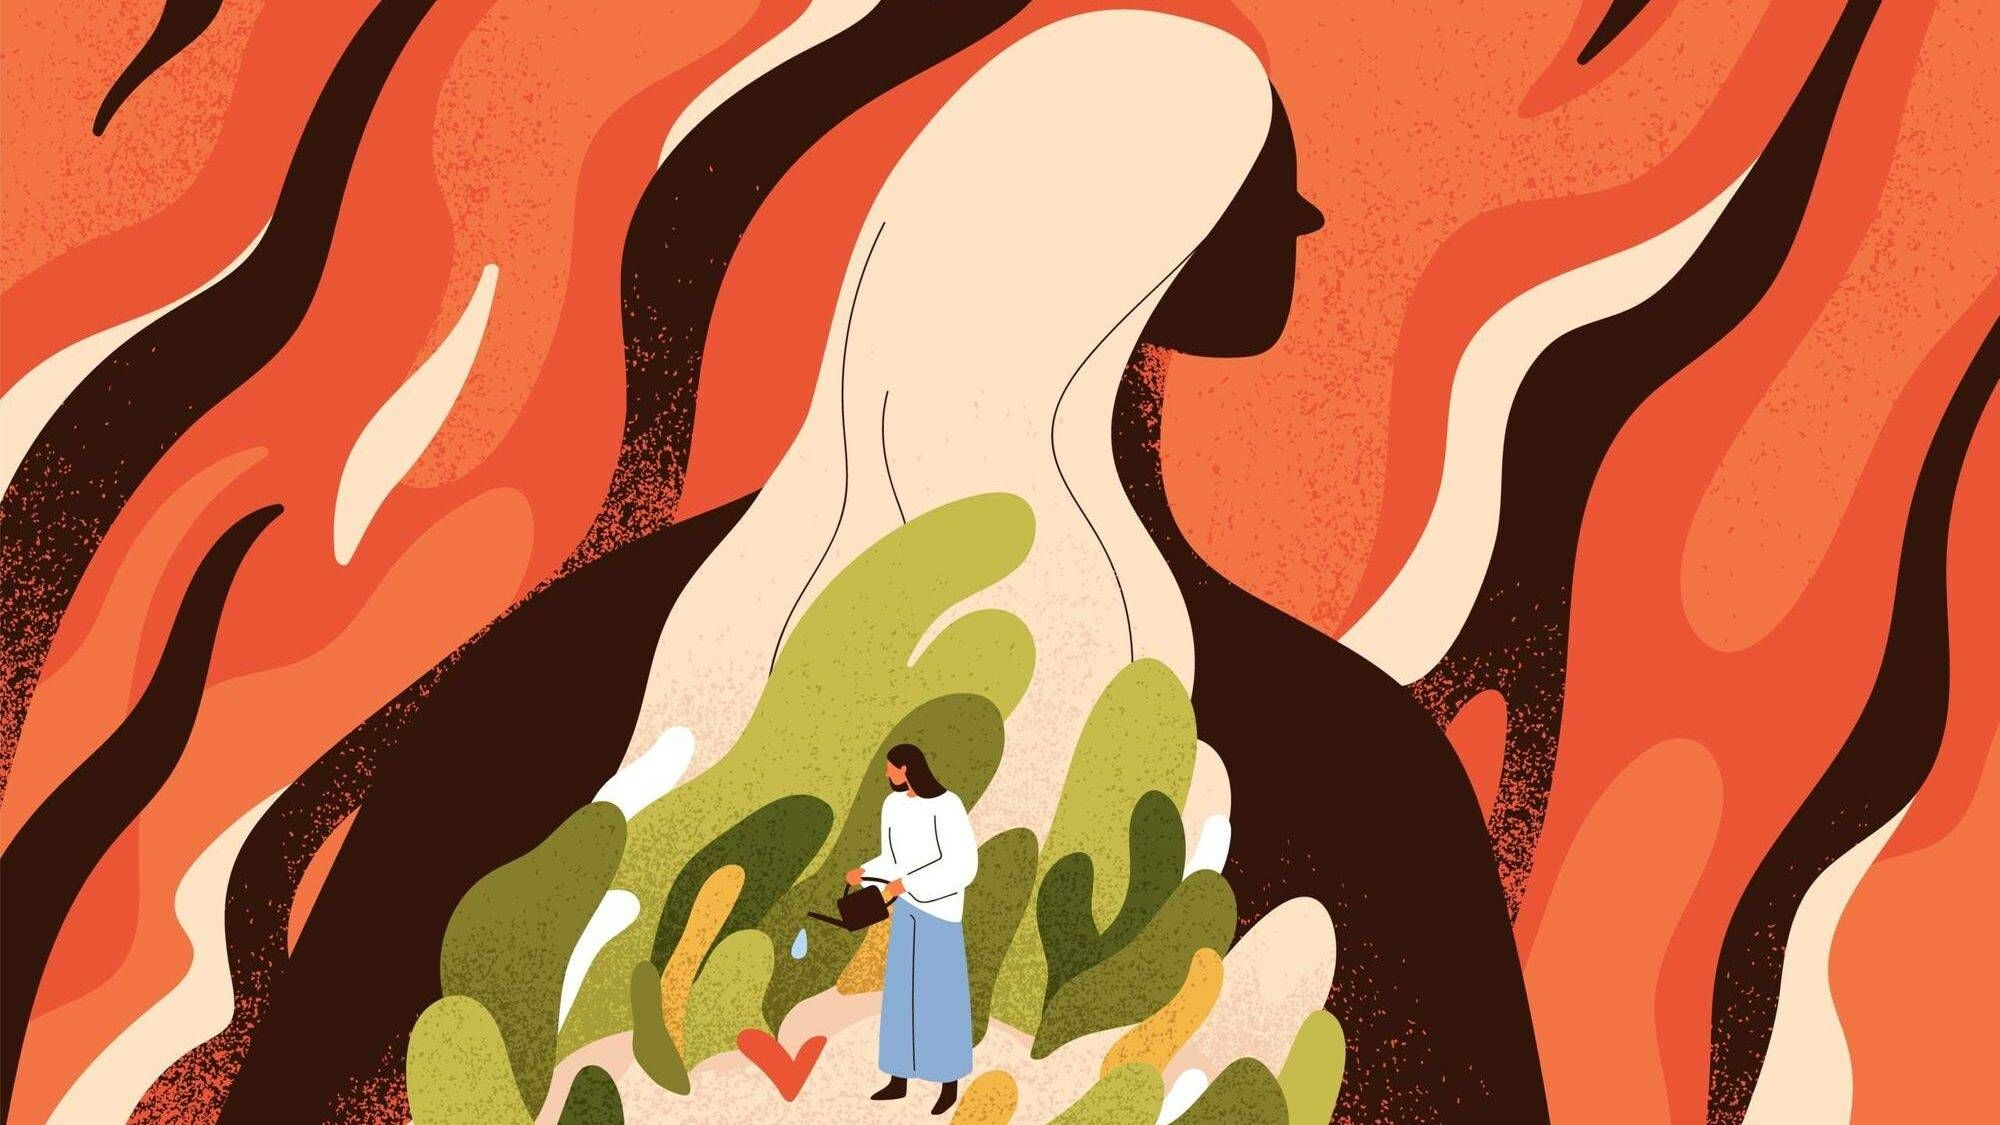 Abstract illustration of woman silhouetted against a fiery background, with a small interior woman watering green plants inside of her, self-care, Rewire